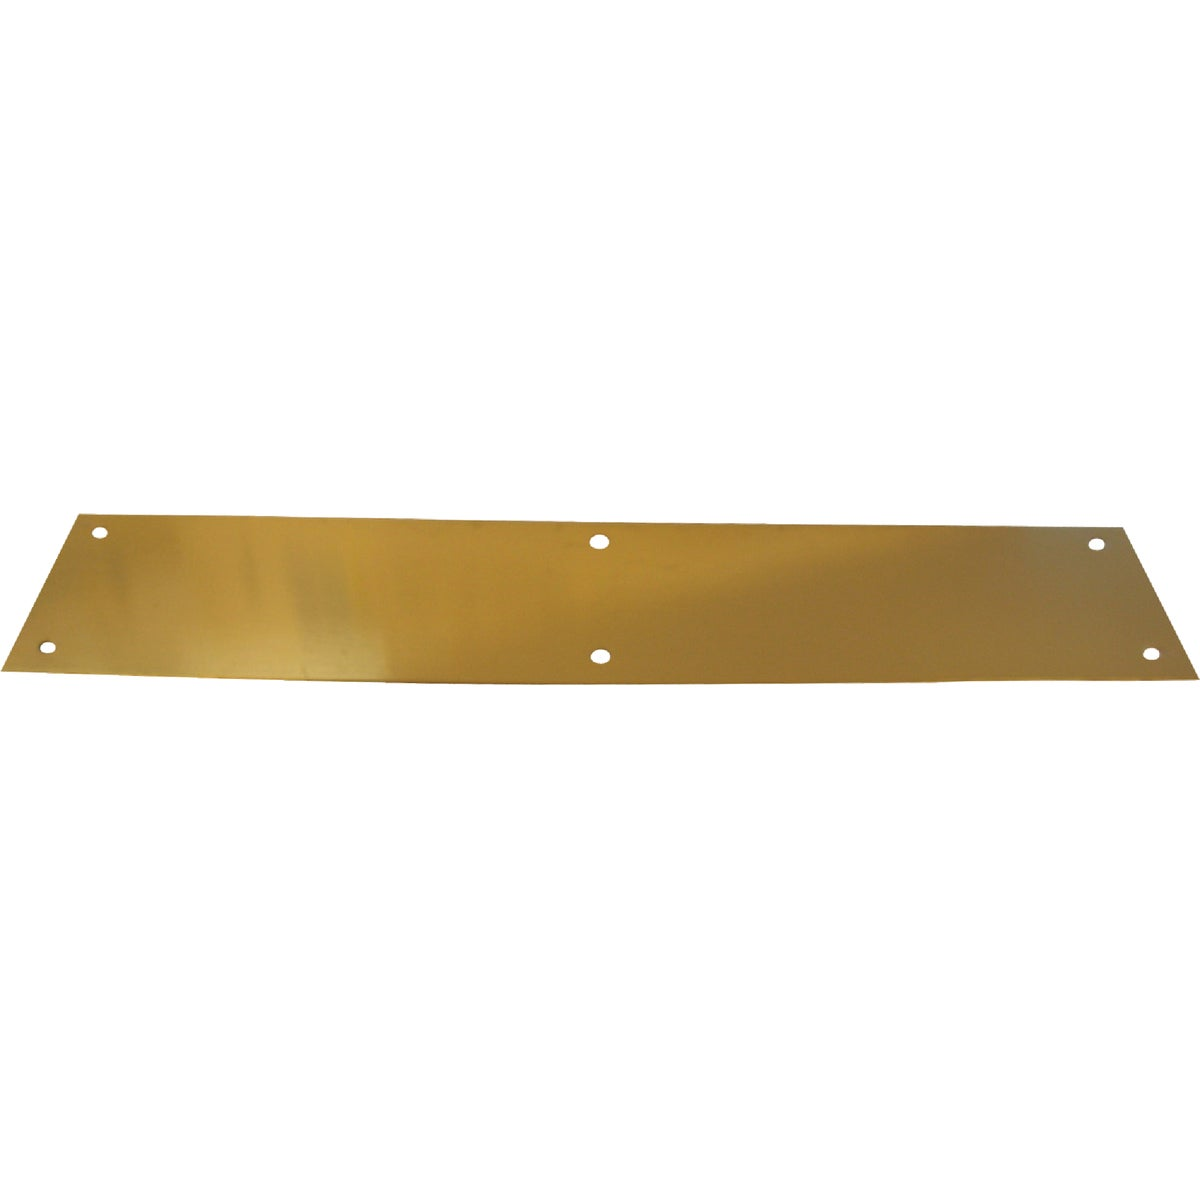 3.5 X 15 3 PUSH PLATE - DT100071 by Tell Mfg Inc